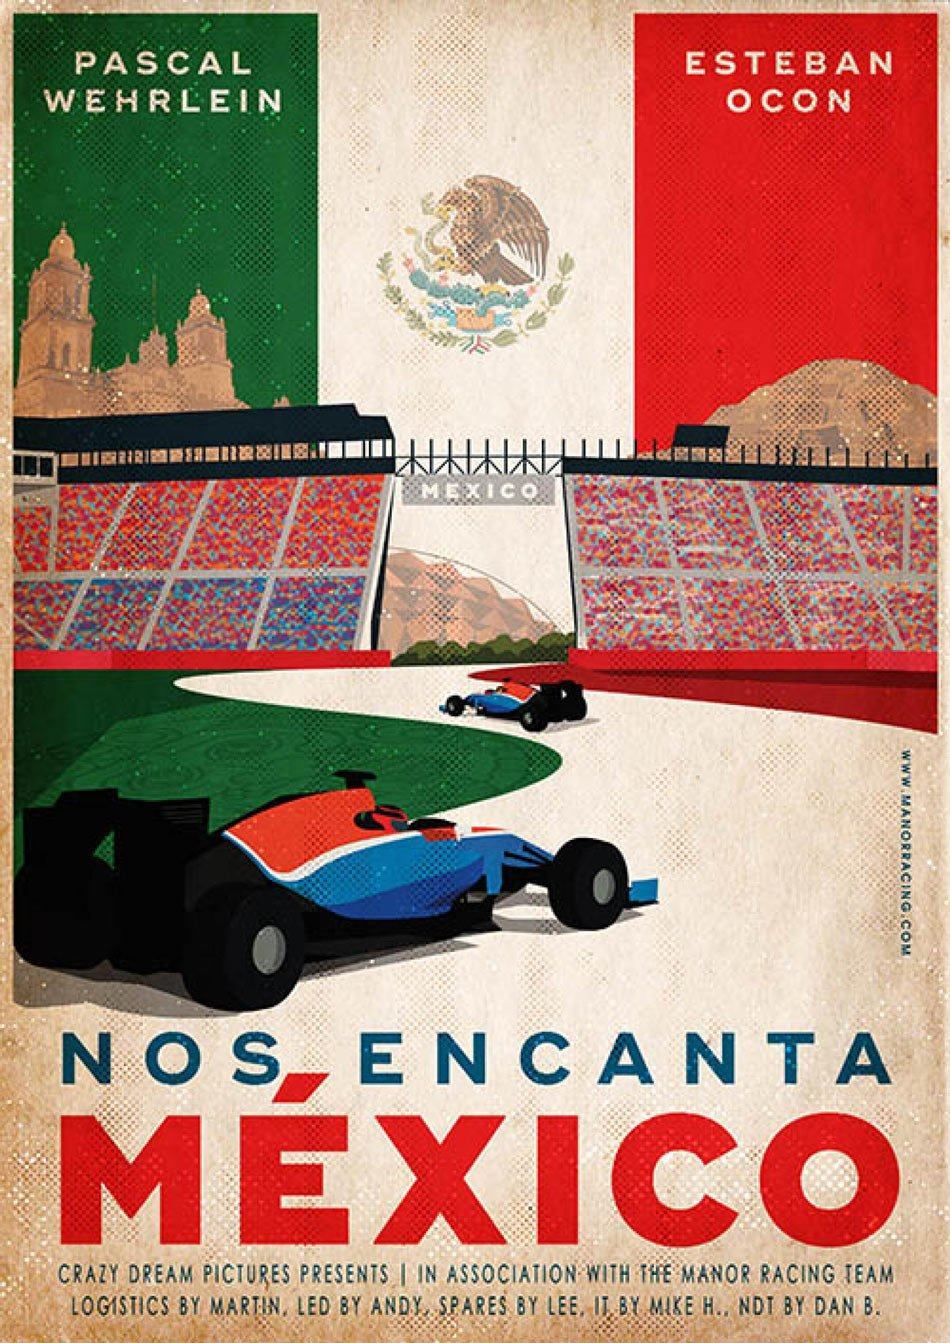 manor-racing-grand-prix-formula-f1-2016-mexico-race-posters